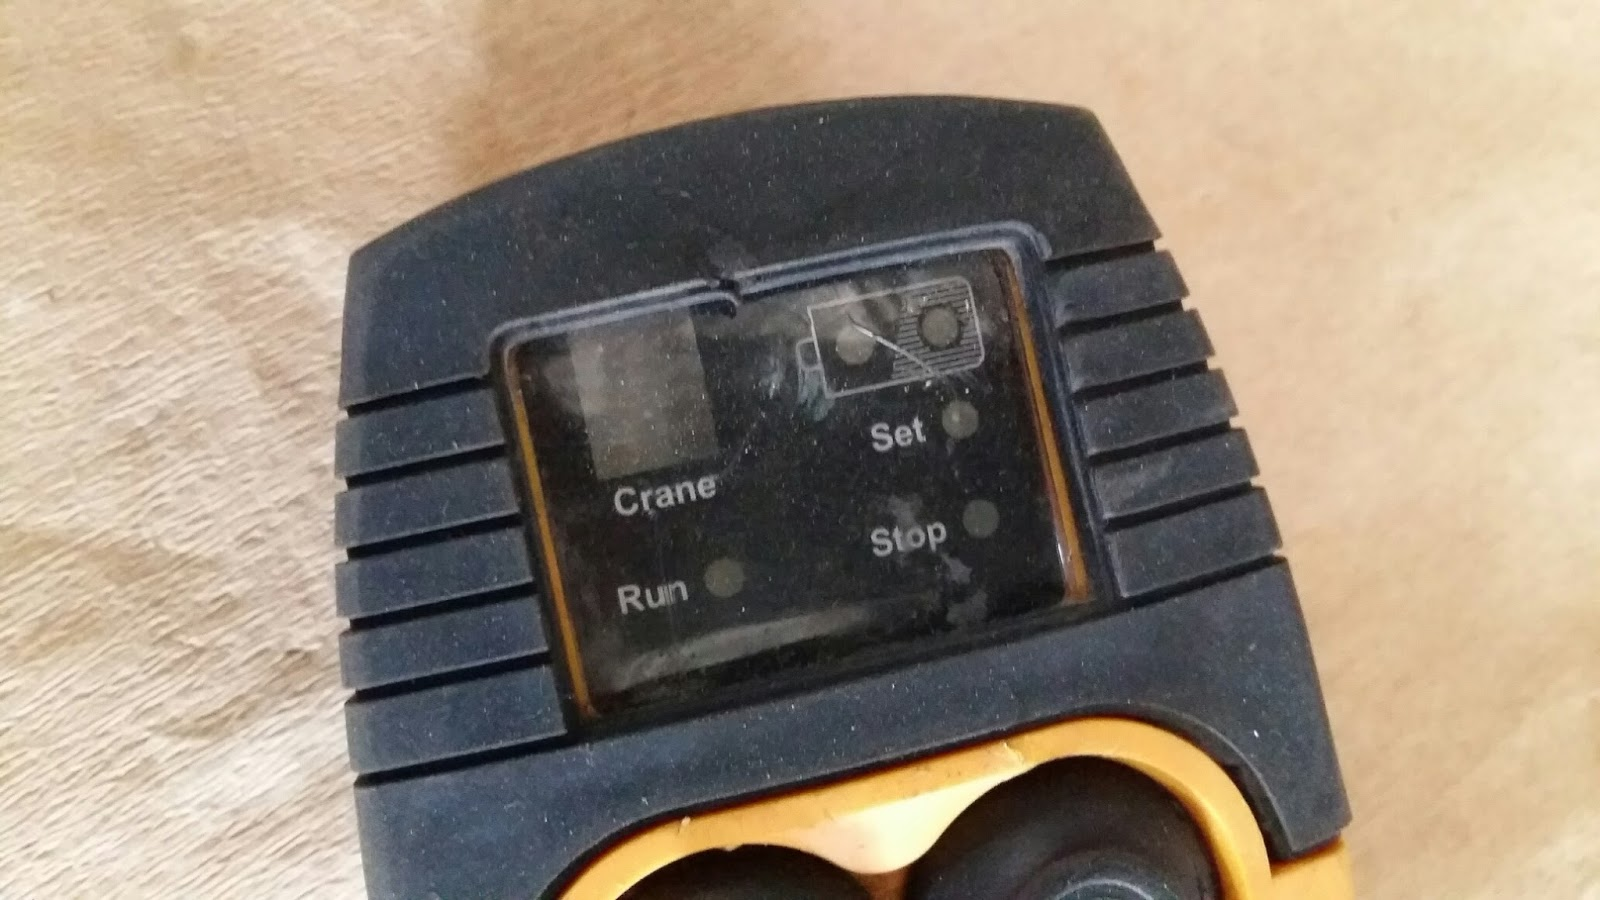 medium resolution of demag drc dc10 radio remote control type drc dc 10 ident no 773 700 44 serial no 051436 ip 55 made in gmbh condition used 1 pcs